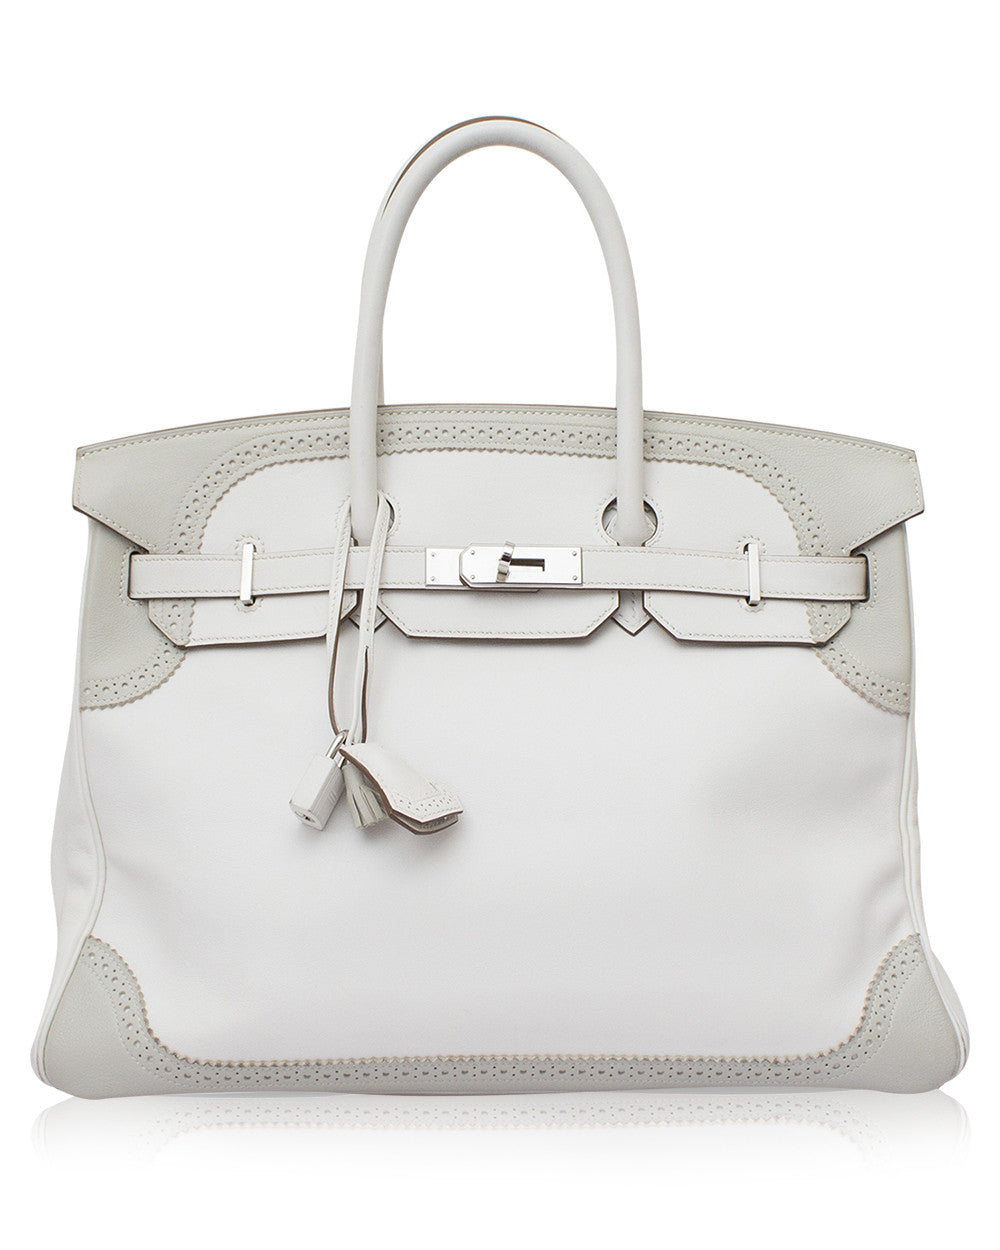 Hermes Birkin 35 Ghillies Bag